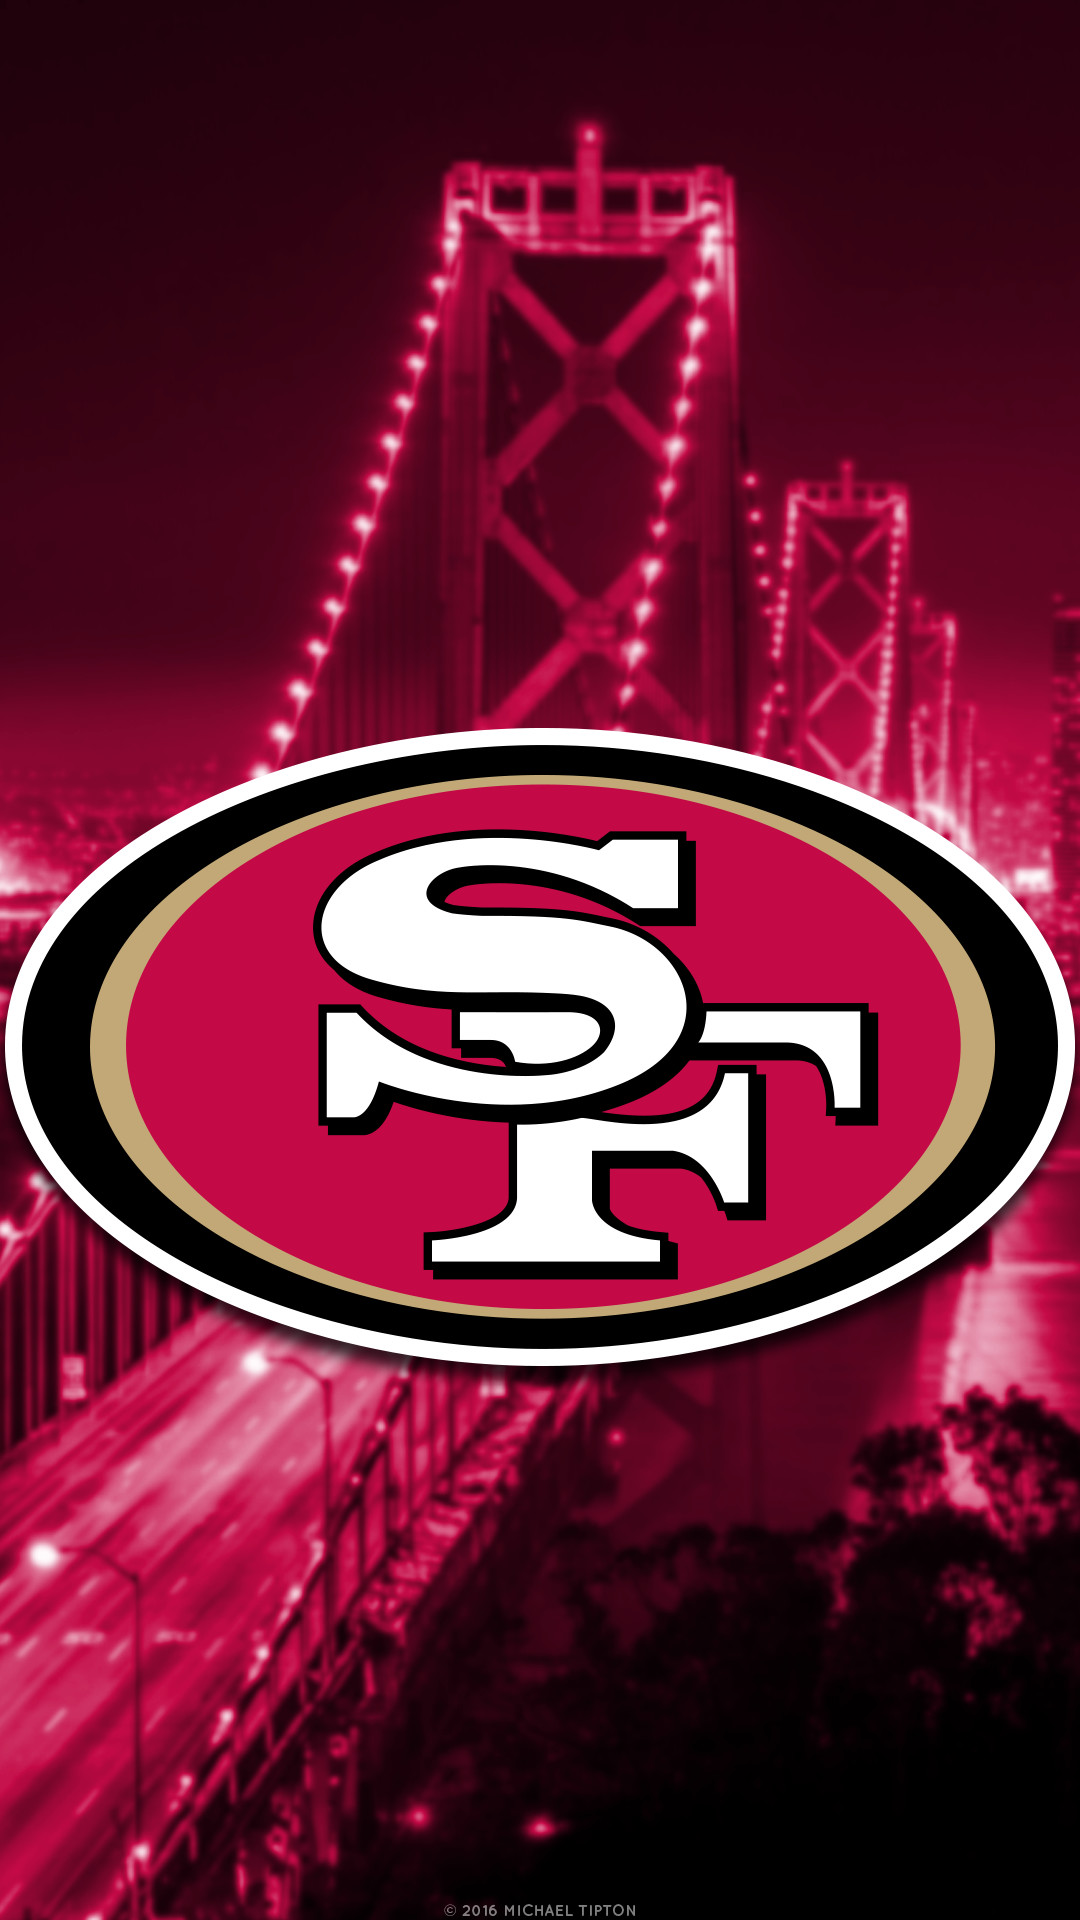 49ers wallpaper iphone 66 images - 49ers wallpaper iphone 5 ...